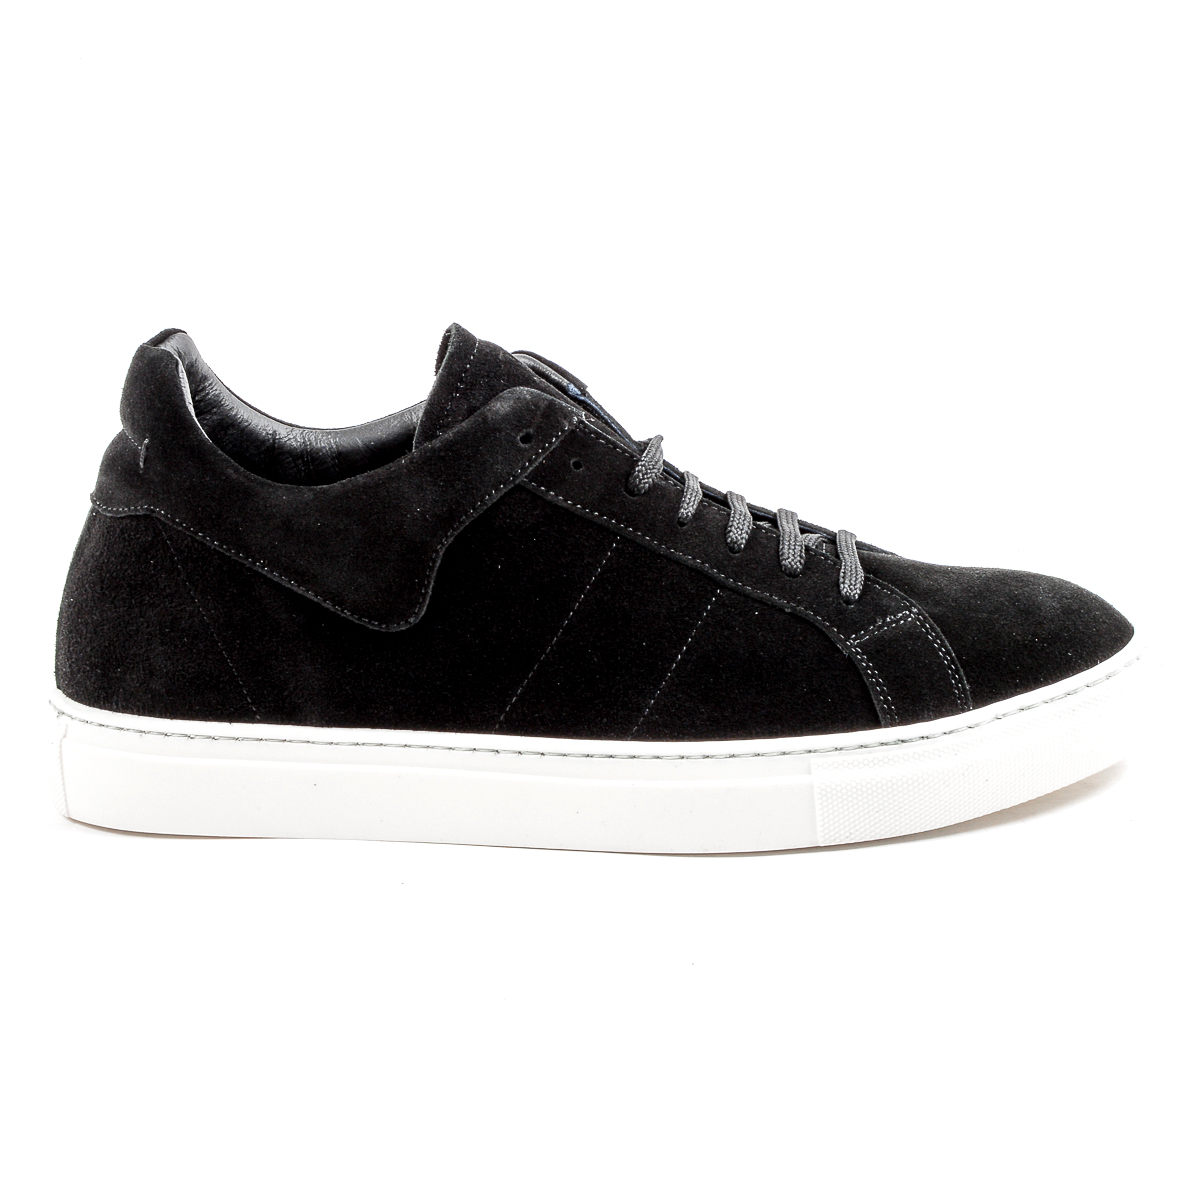 Primary image for V 1969 Italia Mens Sneaker Black ZENO